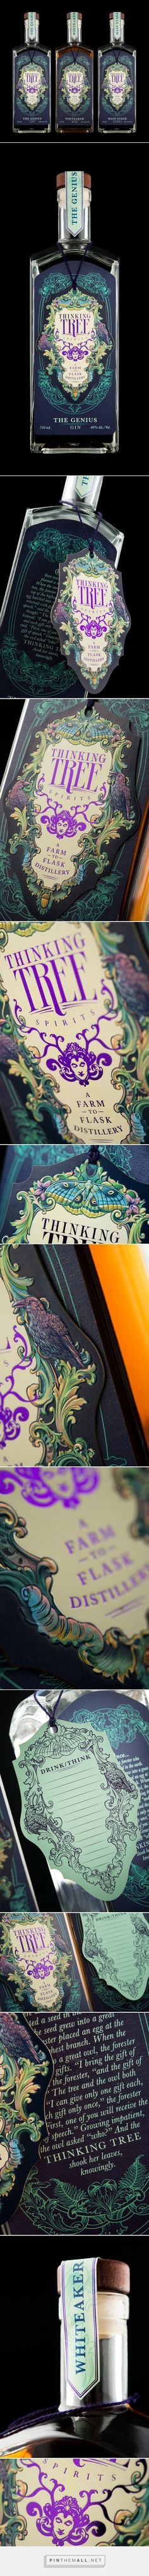 Thinking Tree Spirits packaging design by Hired Guns Creative - http://www.packagingoftheworld.com/2016/11/thinking-tree-spirits.html